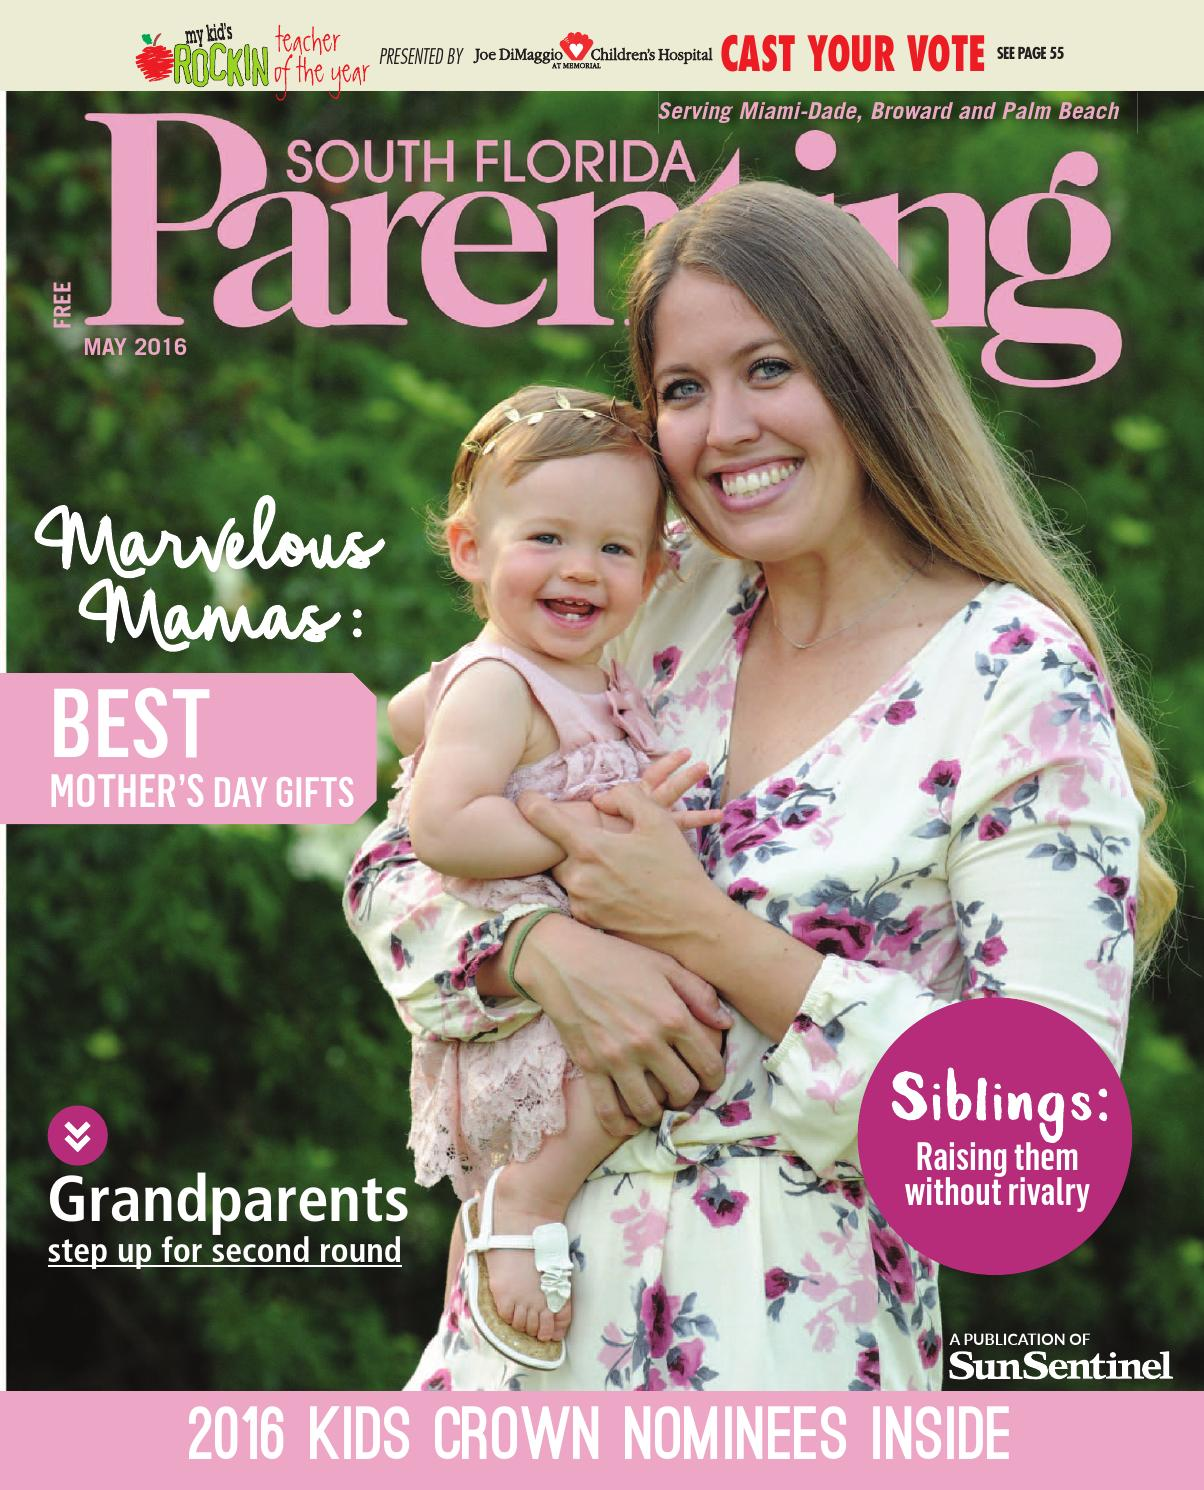 fcdbf8670e5a South Florida Parenting May 2016 by Forum Publishing Group - issuu